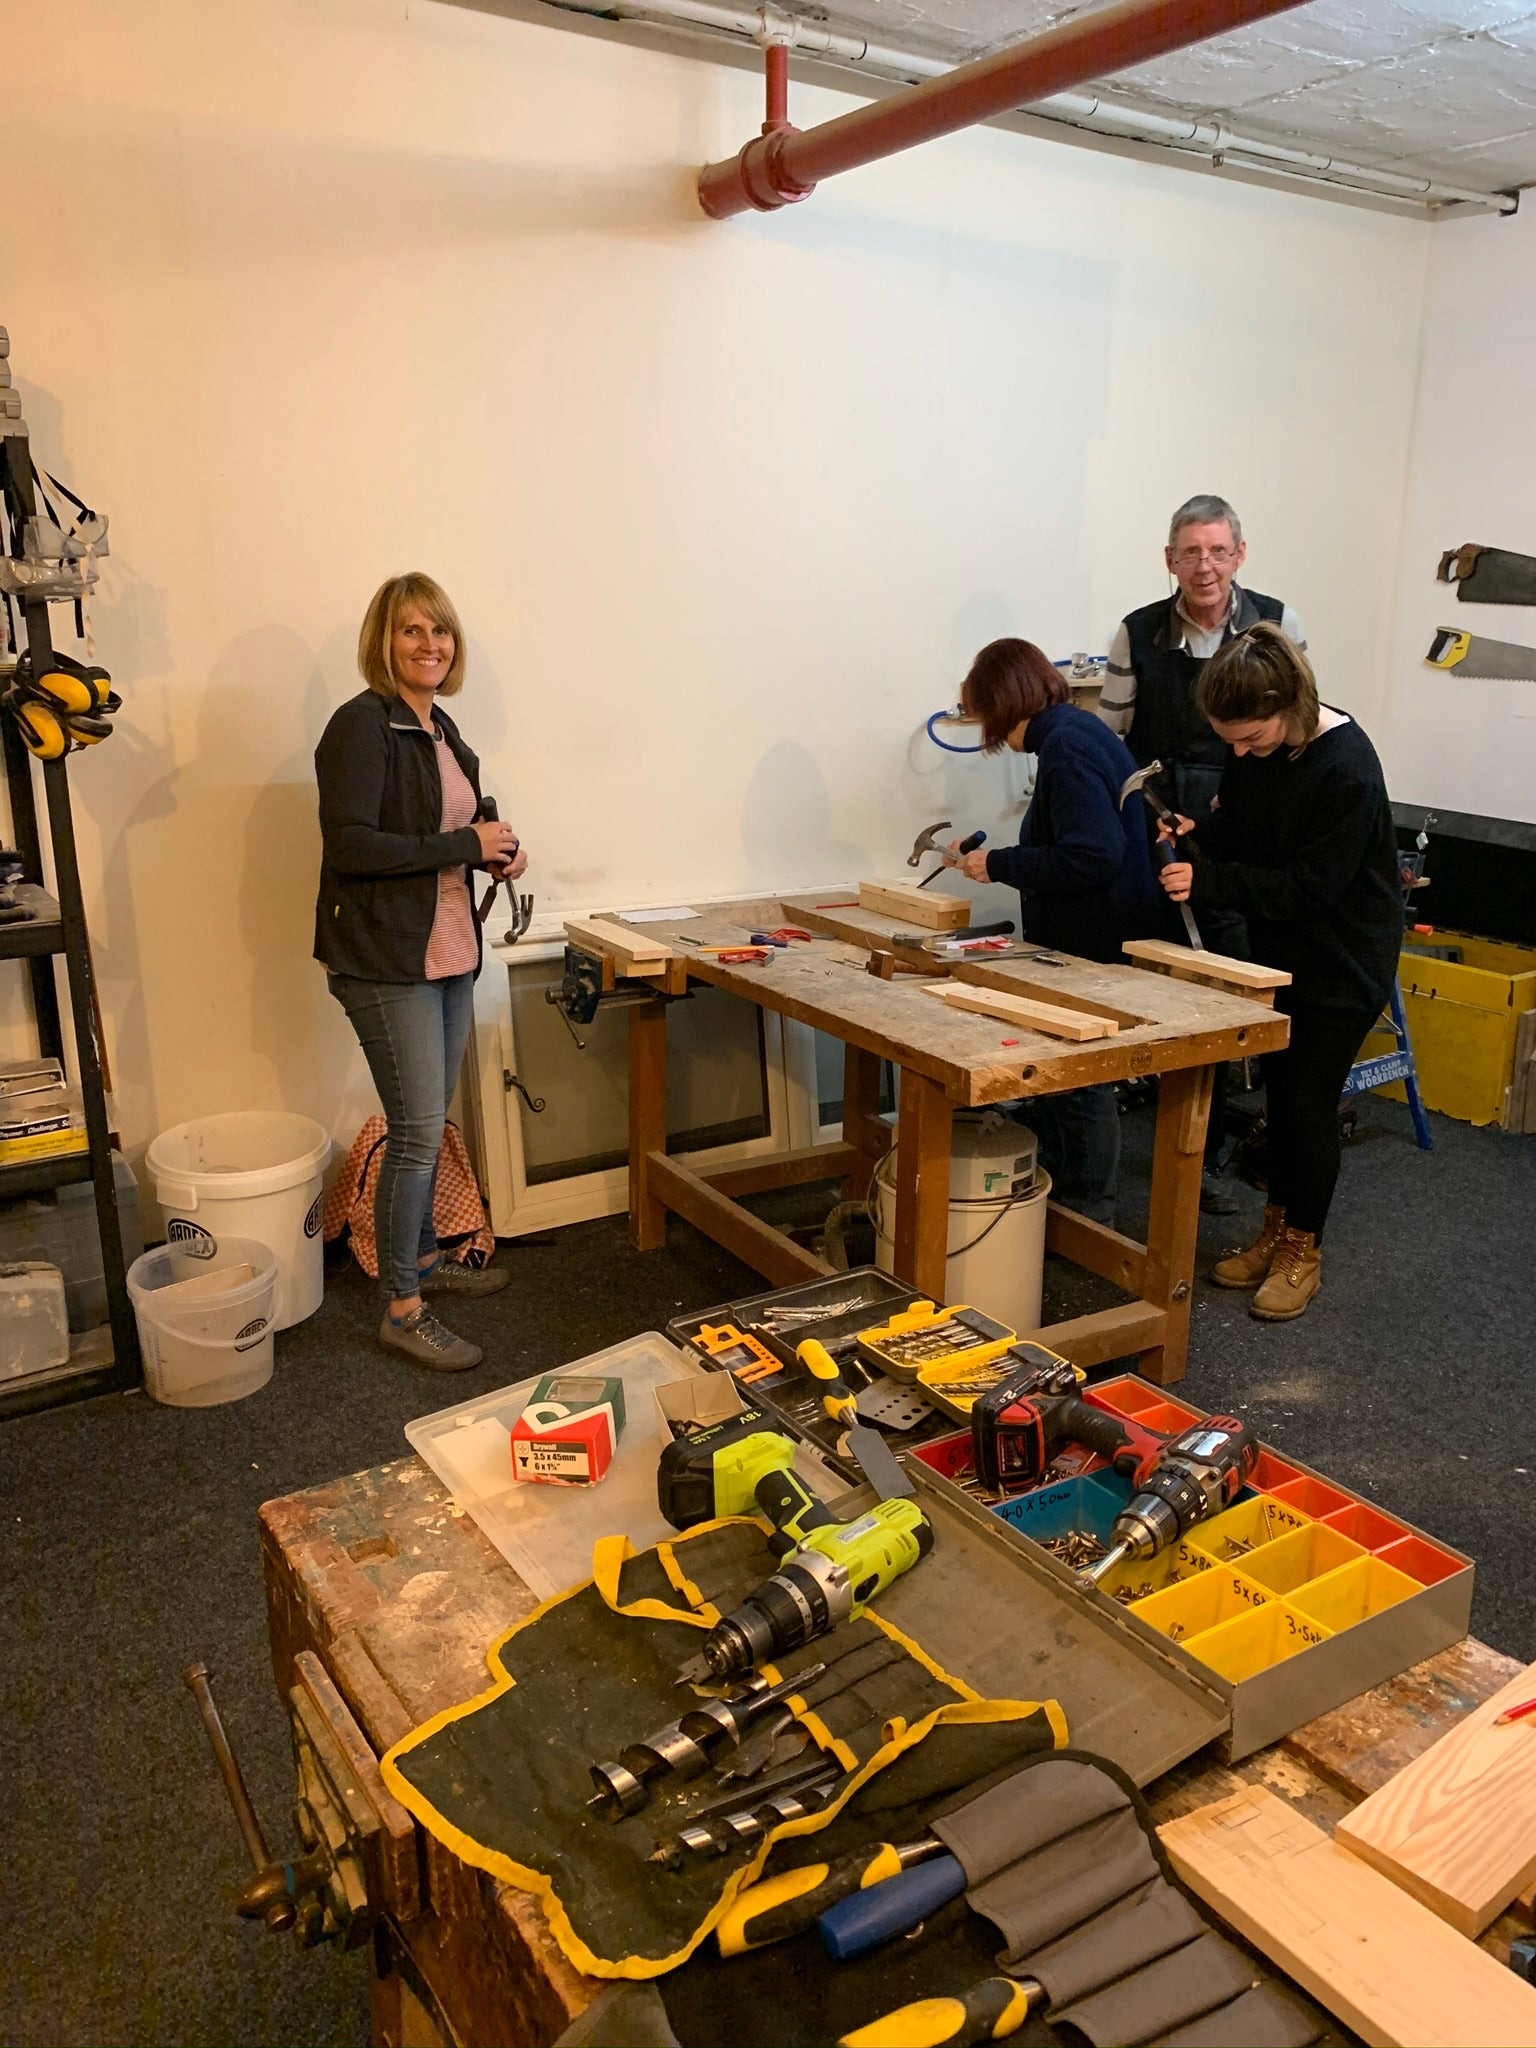 Beginners DIY Course - Hand & Power Tools 1 Day